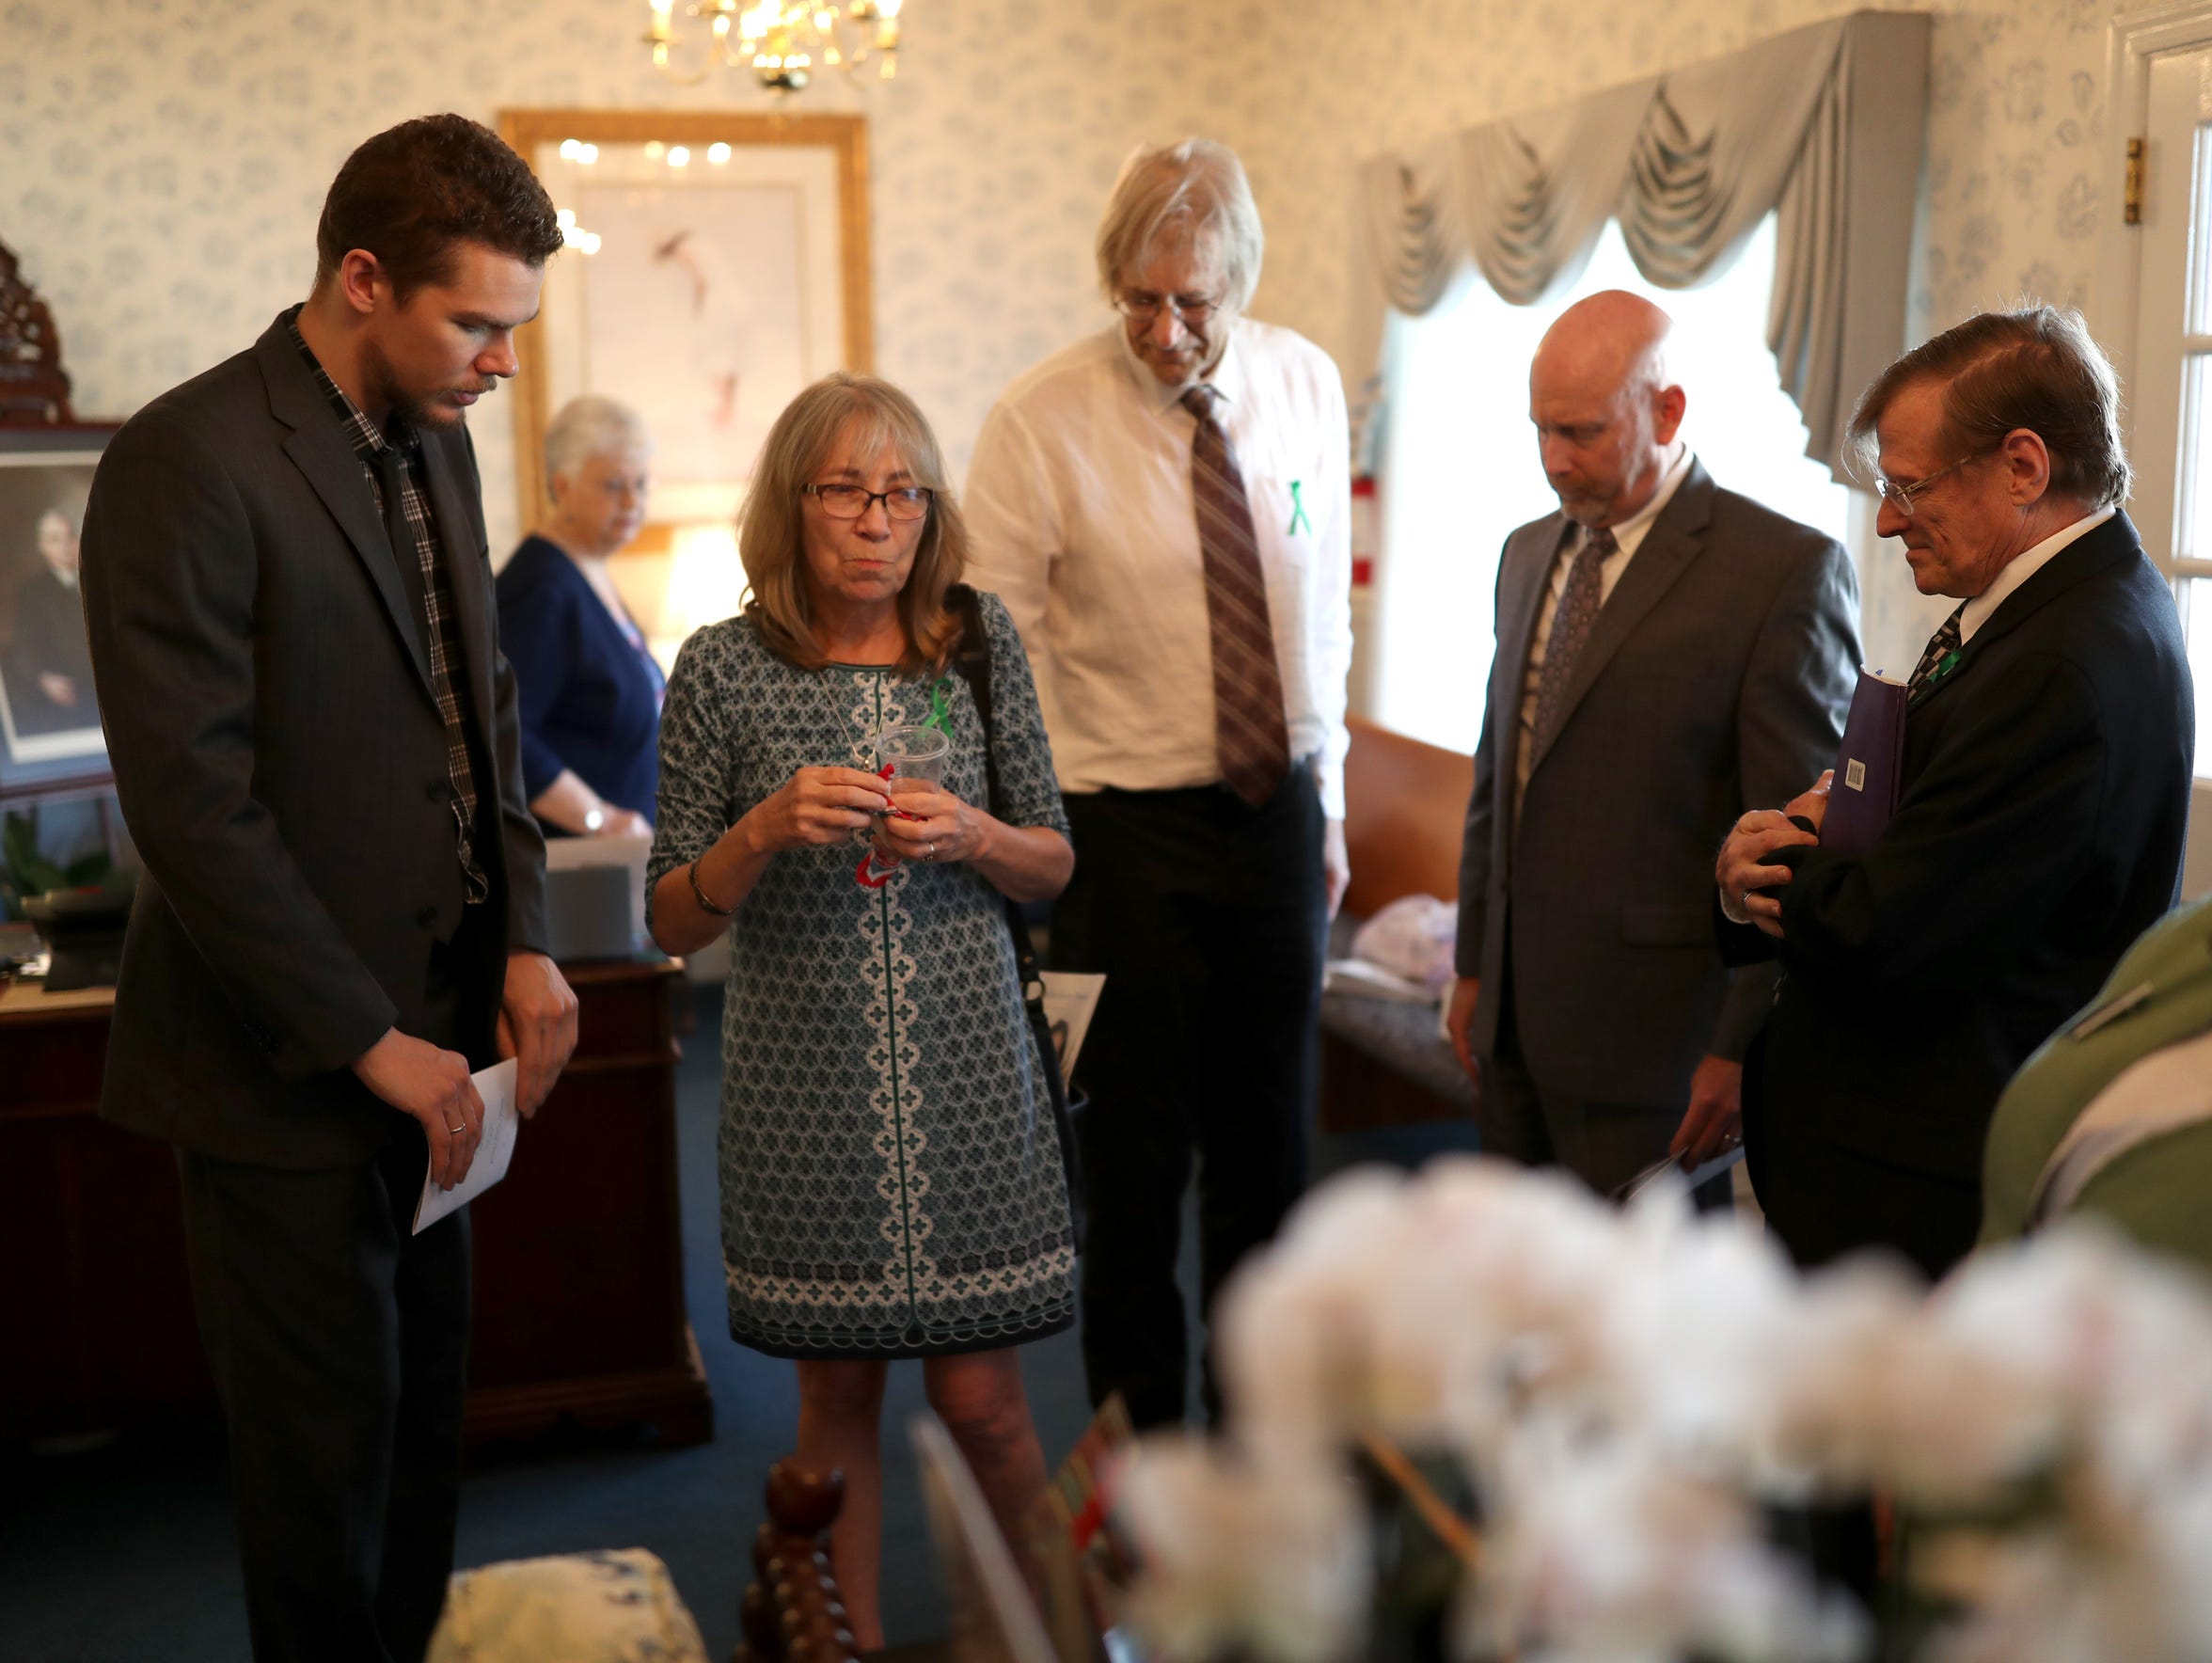 Beth Frederick and Steven Hjelm, center, enter the funeral for their daughter Jennifer Casey Norred on Sunday, July 30, 2017. Correctional staff at the Leon County jail found Norred's body in her cell after she killed herself.